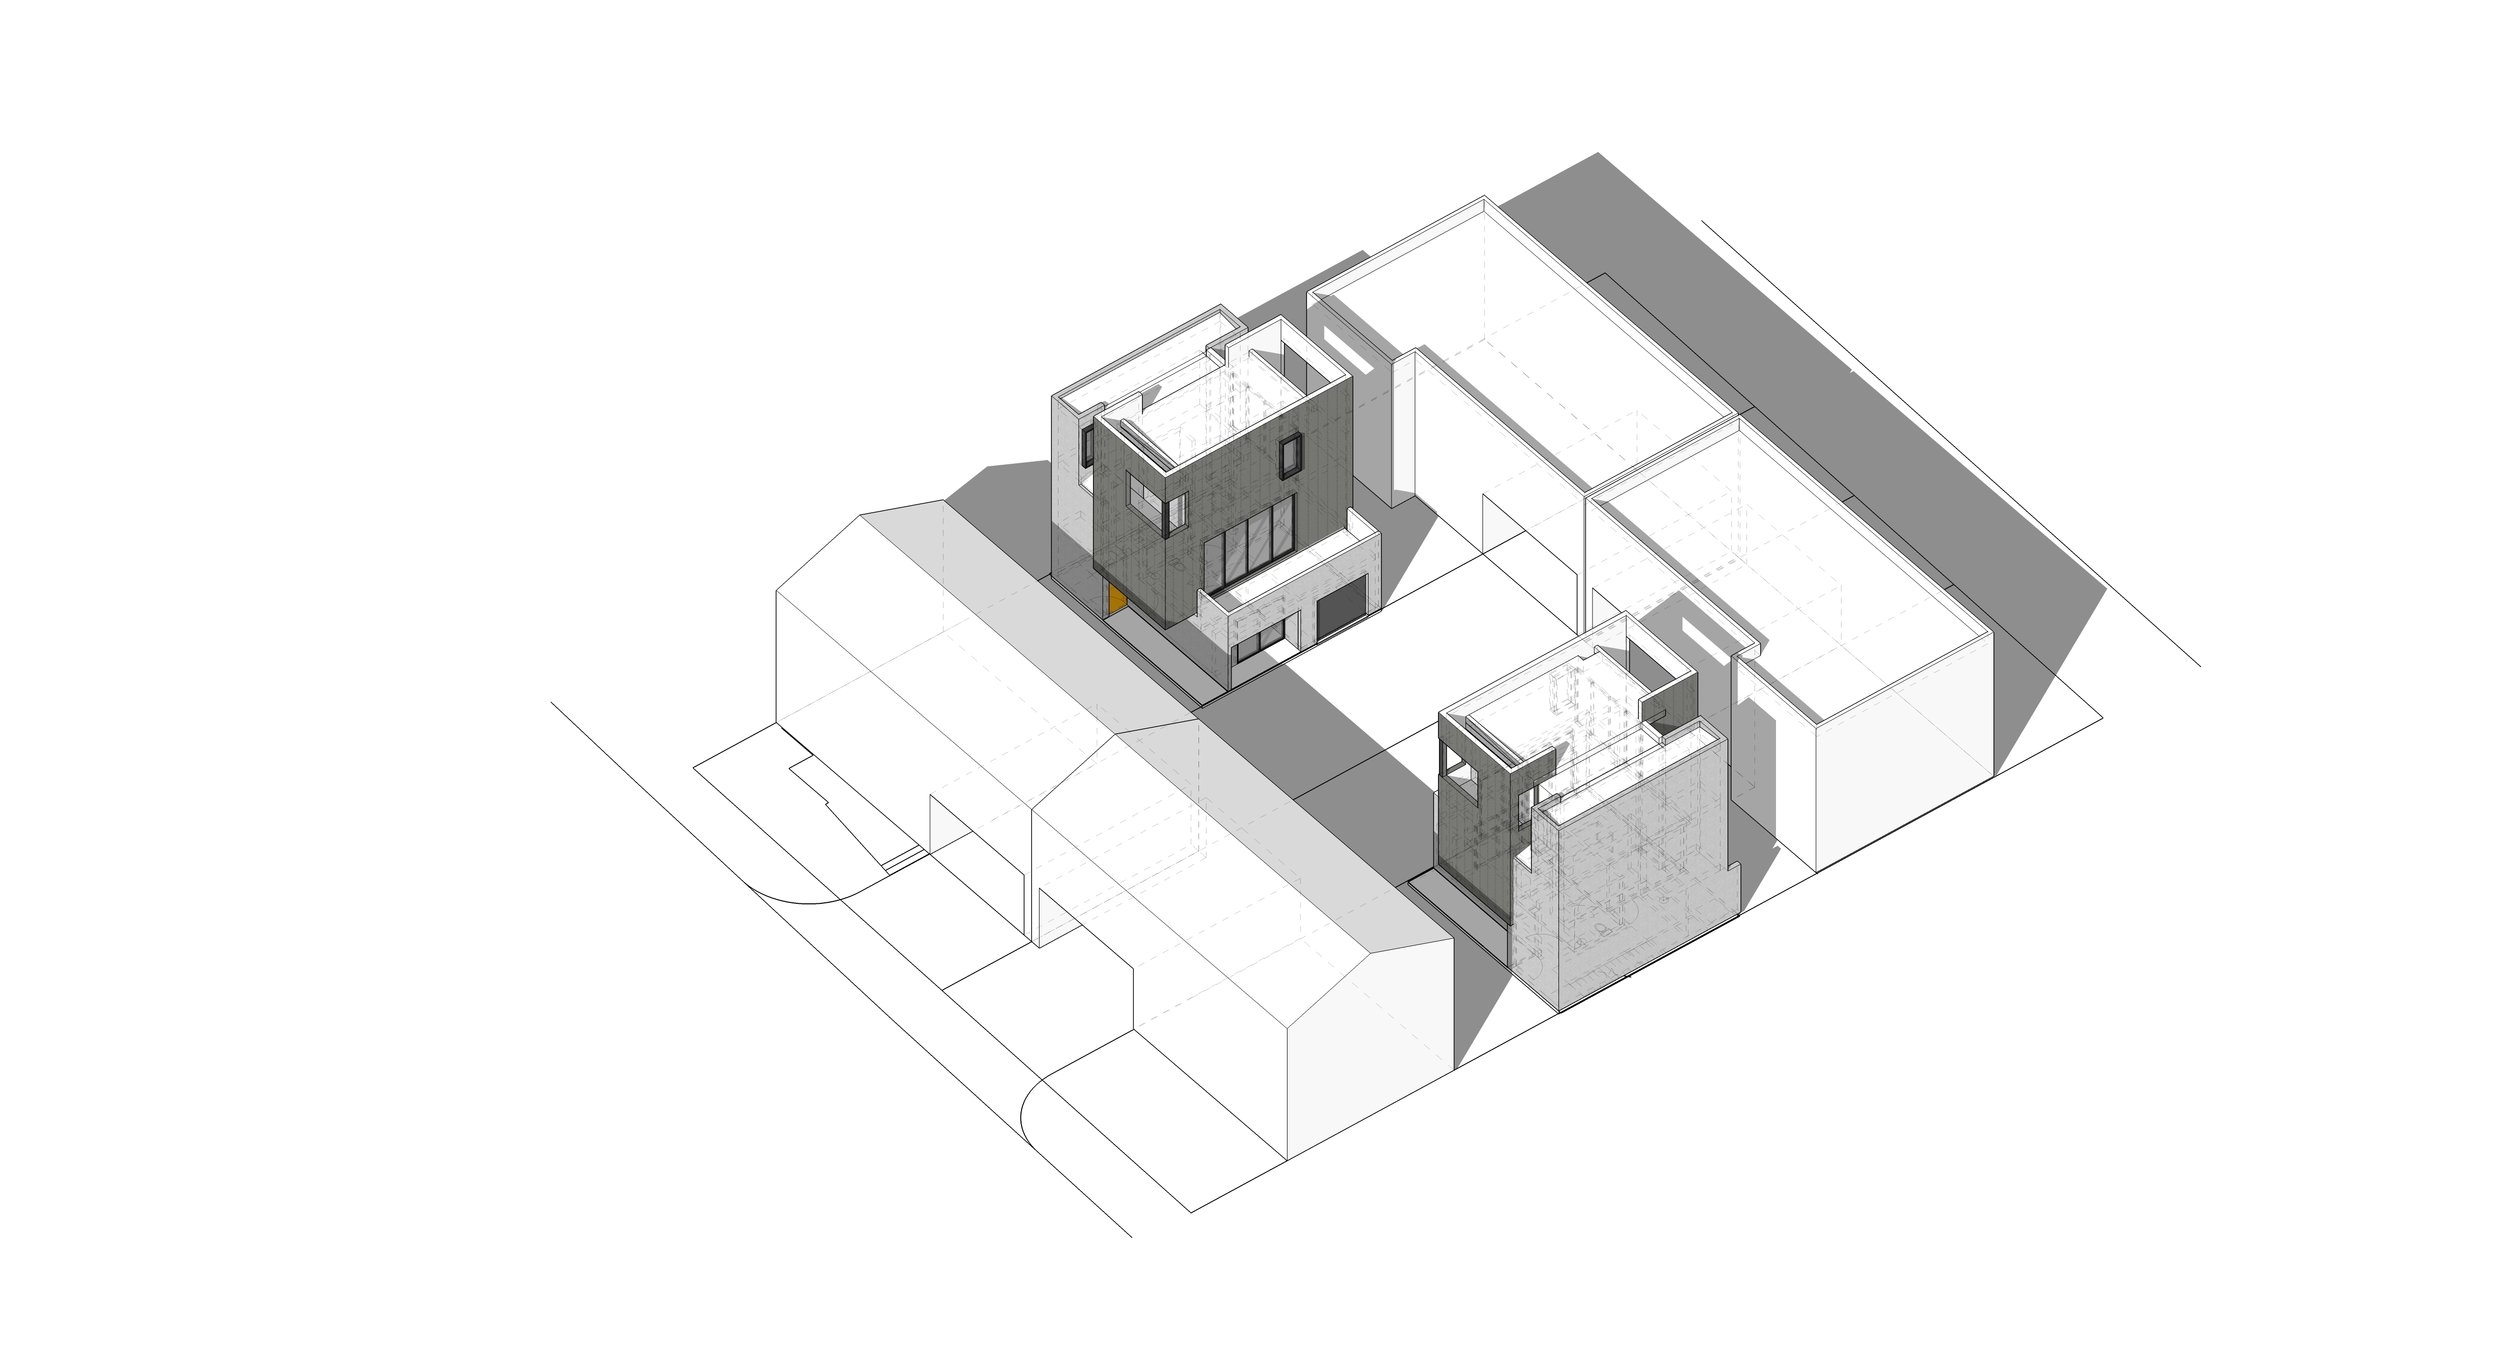 Prototype Infill House